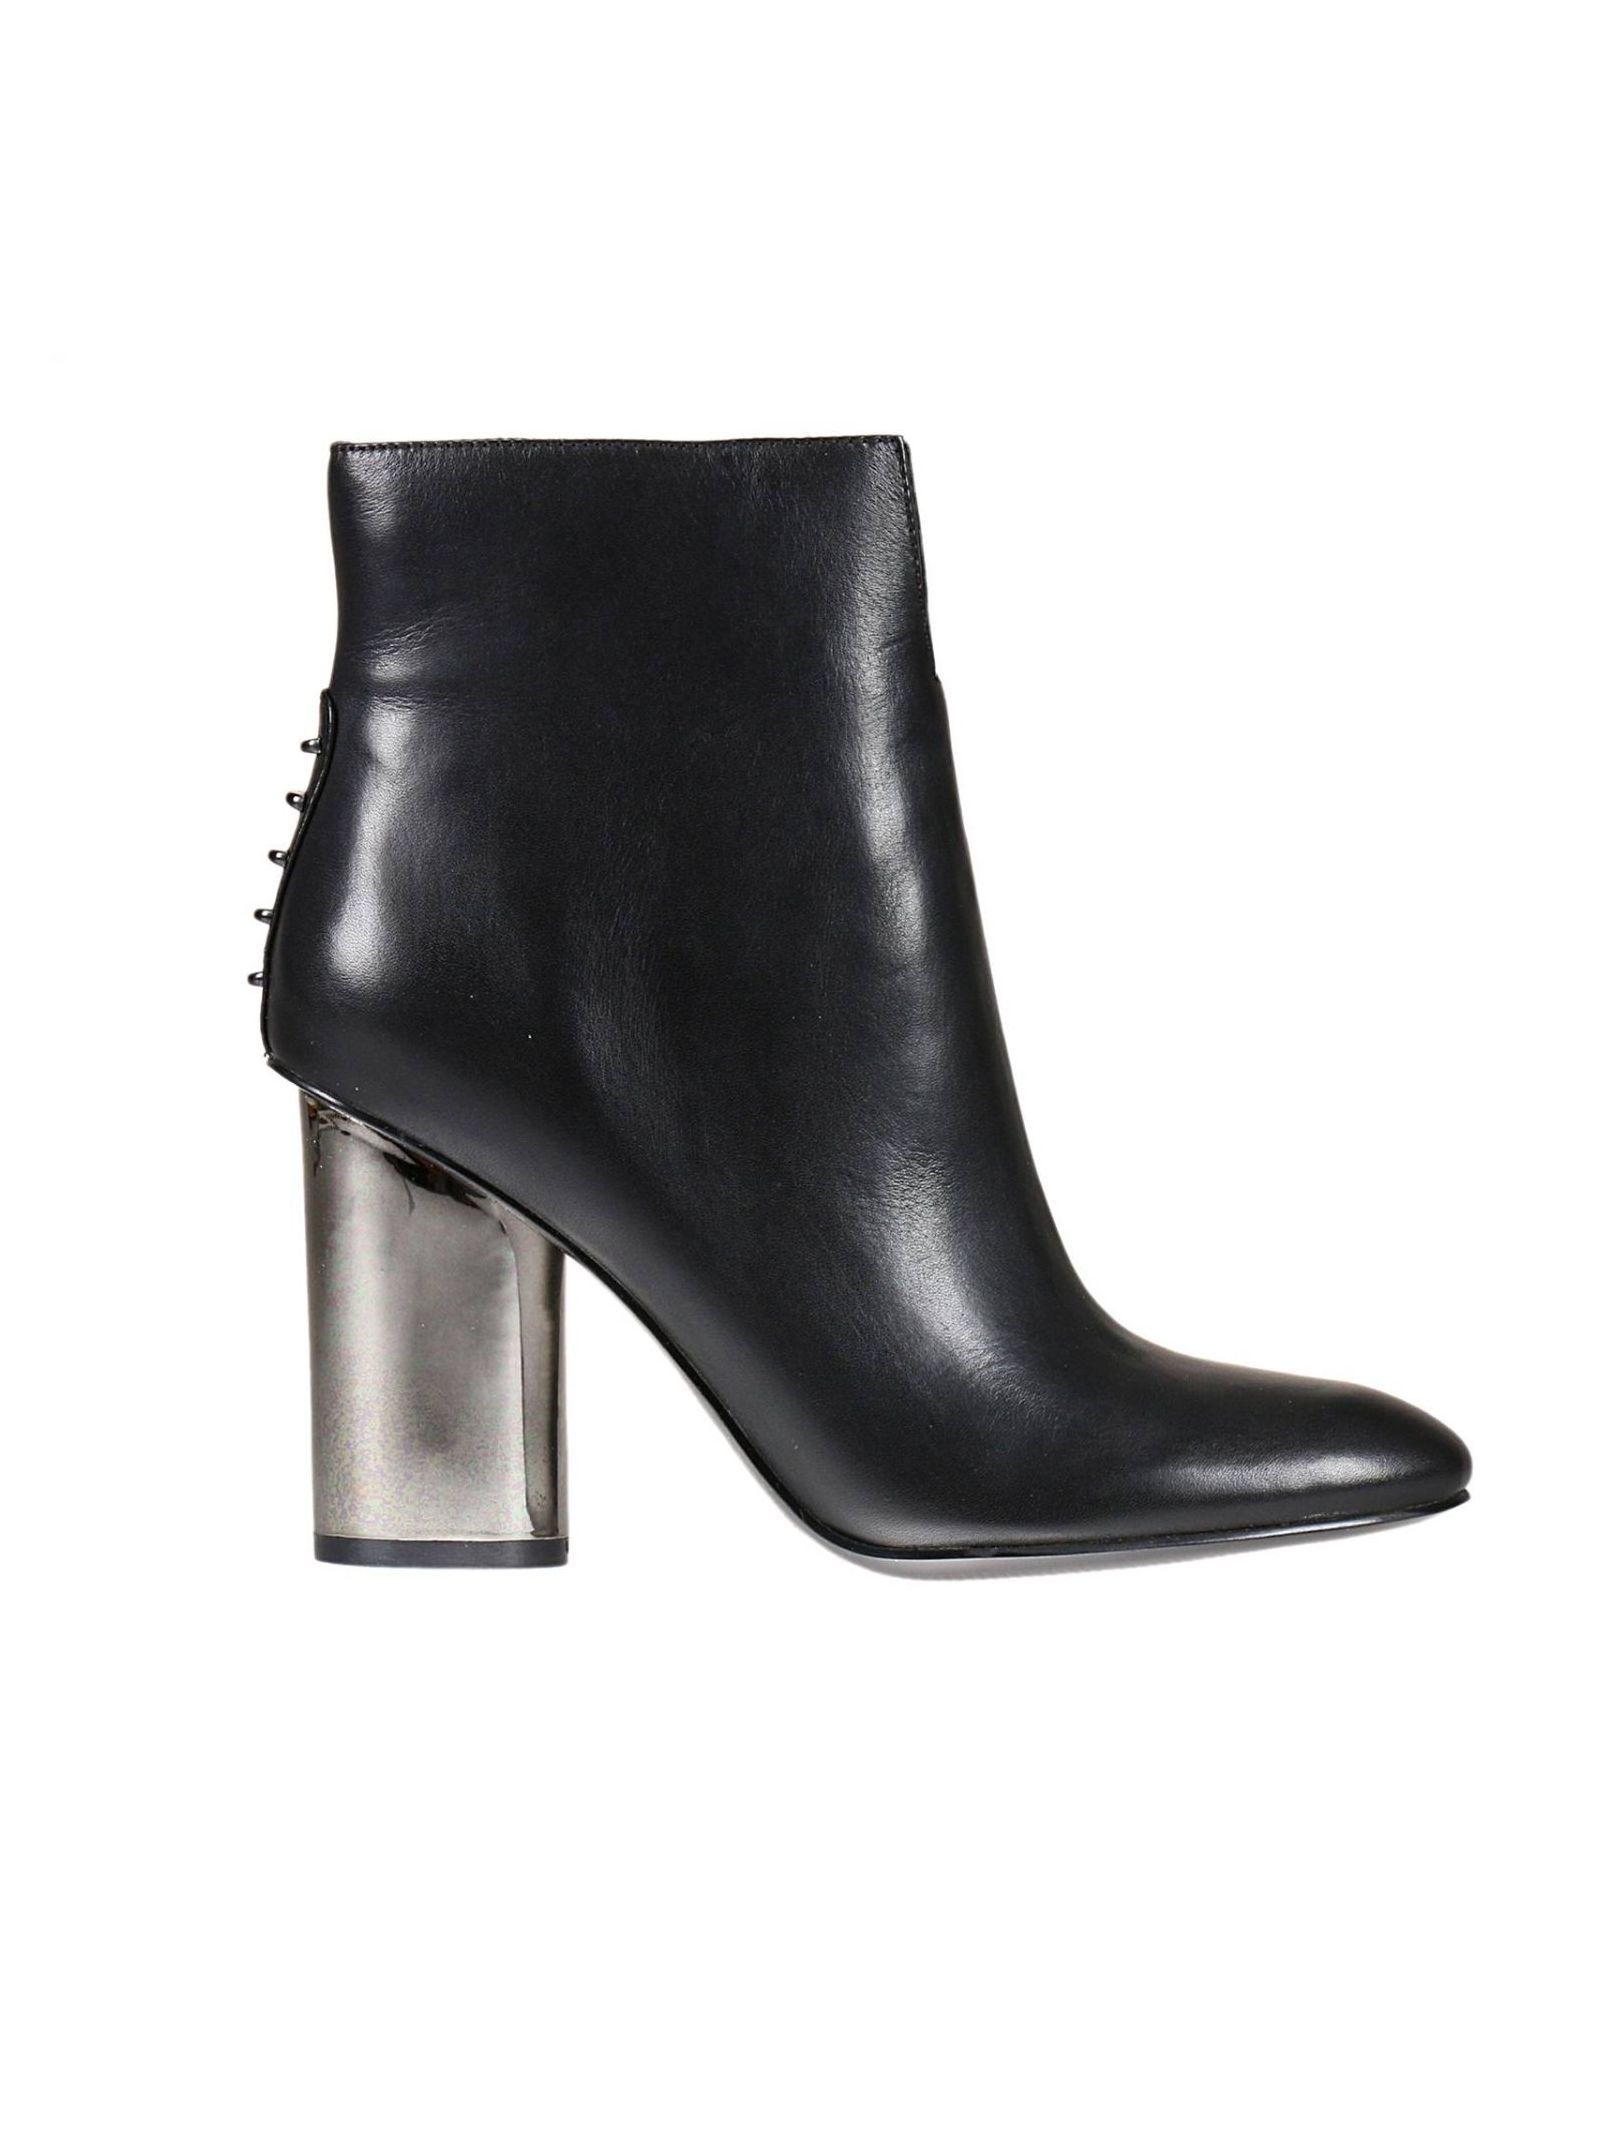 Ankle Boots Shoes Woman Kendall + Kylie